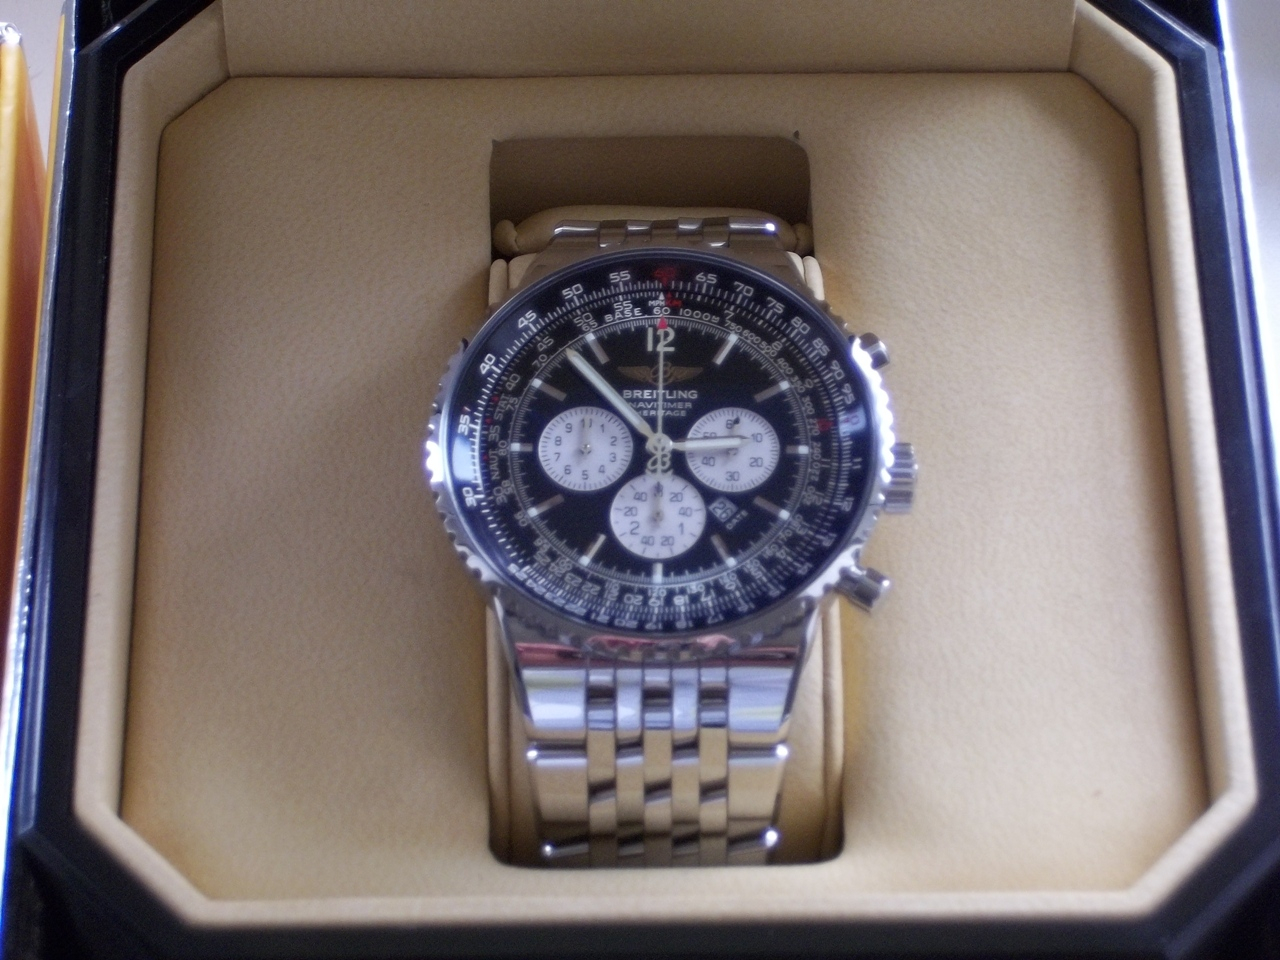 breitling aviator watch prices l41z  d breitling navitimer heritage aus jpg breitling navitimer heritage a;  Breitling A cheap watches